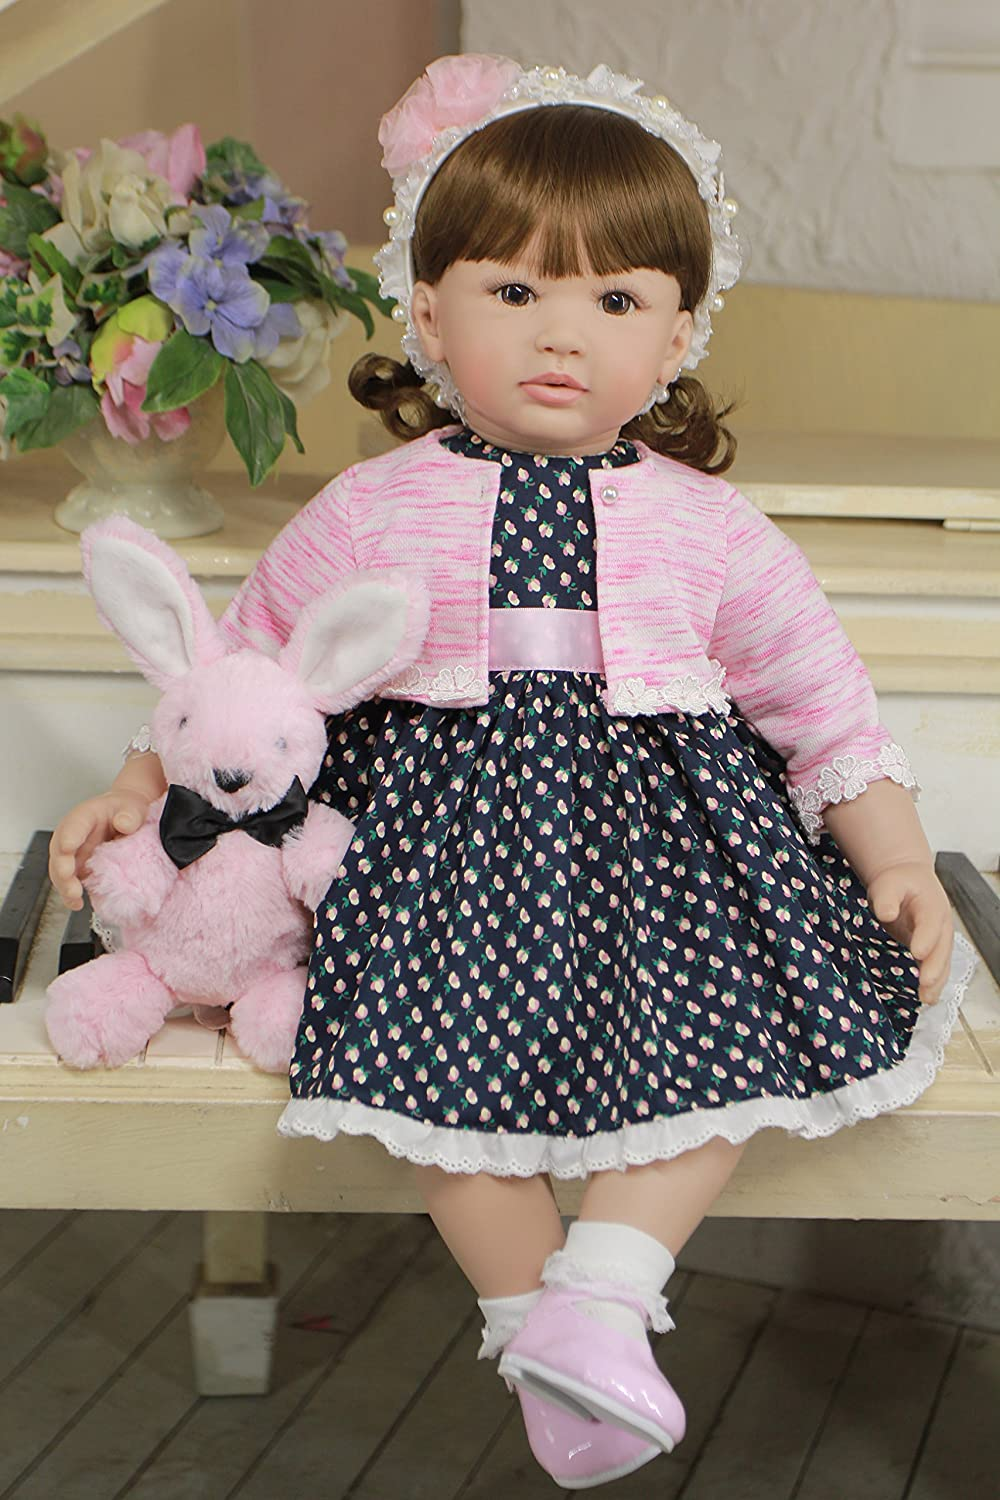 PursueベビーキュートLifelike幼児用プリンセスGirl Doll with Curly Hair Eliana、24インチソフトボディReal Looking Toddler幼児Doll Weighted For Snuggle   B07B7GXM1L